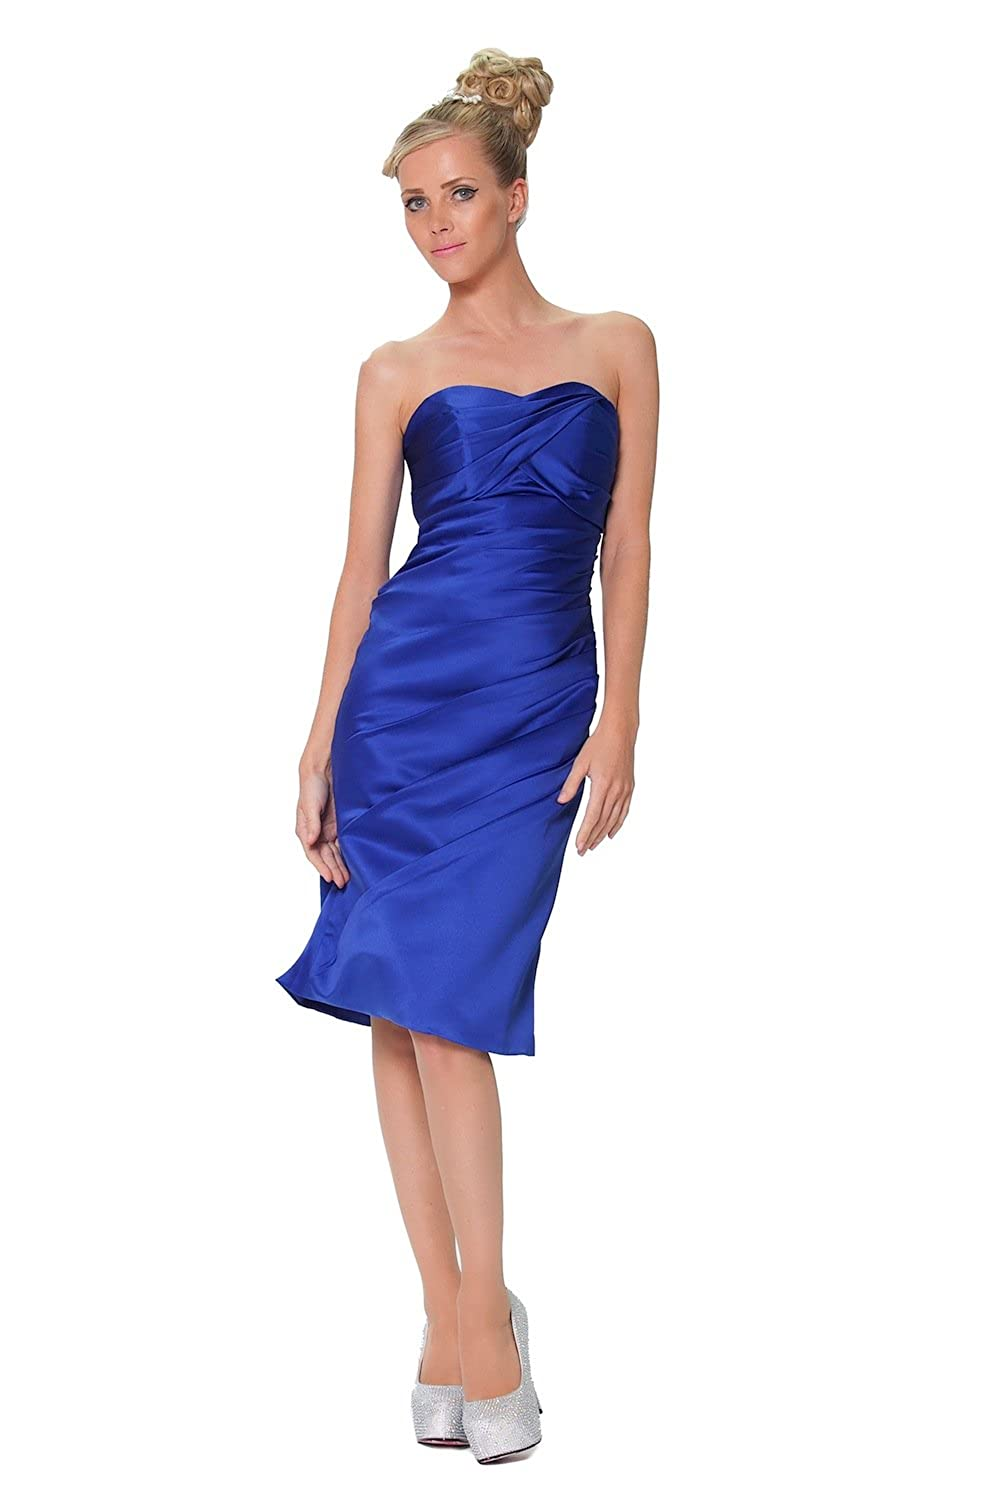 Strapless Bridesmaid Knee Length Dress in Royal Blue - CO8807